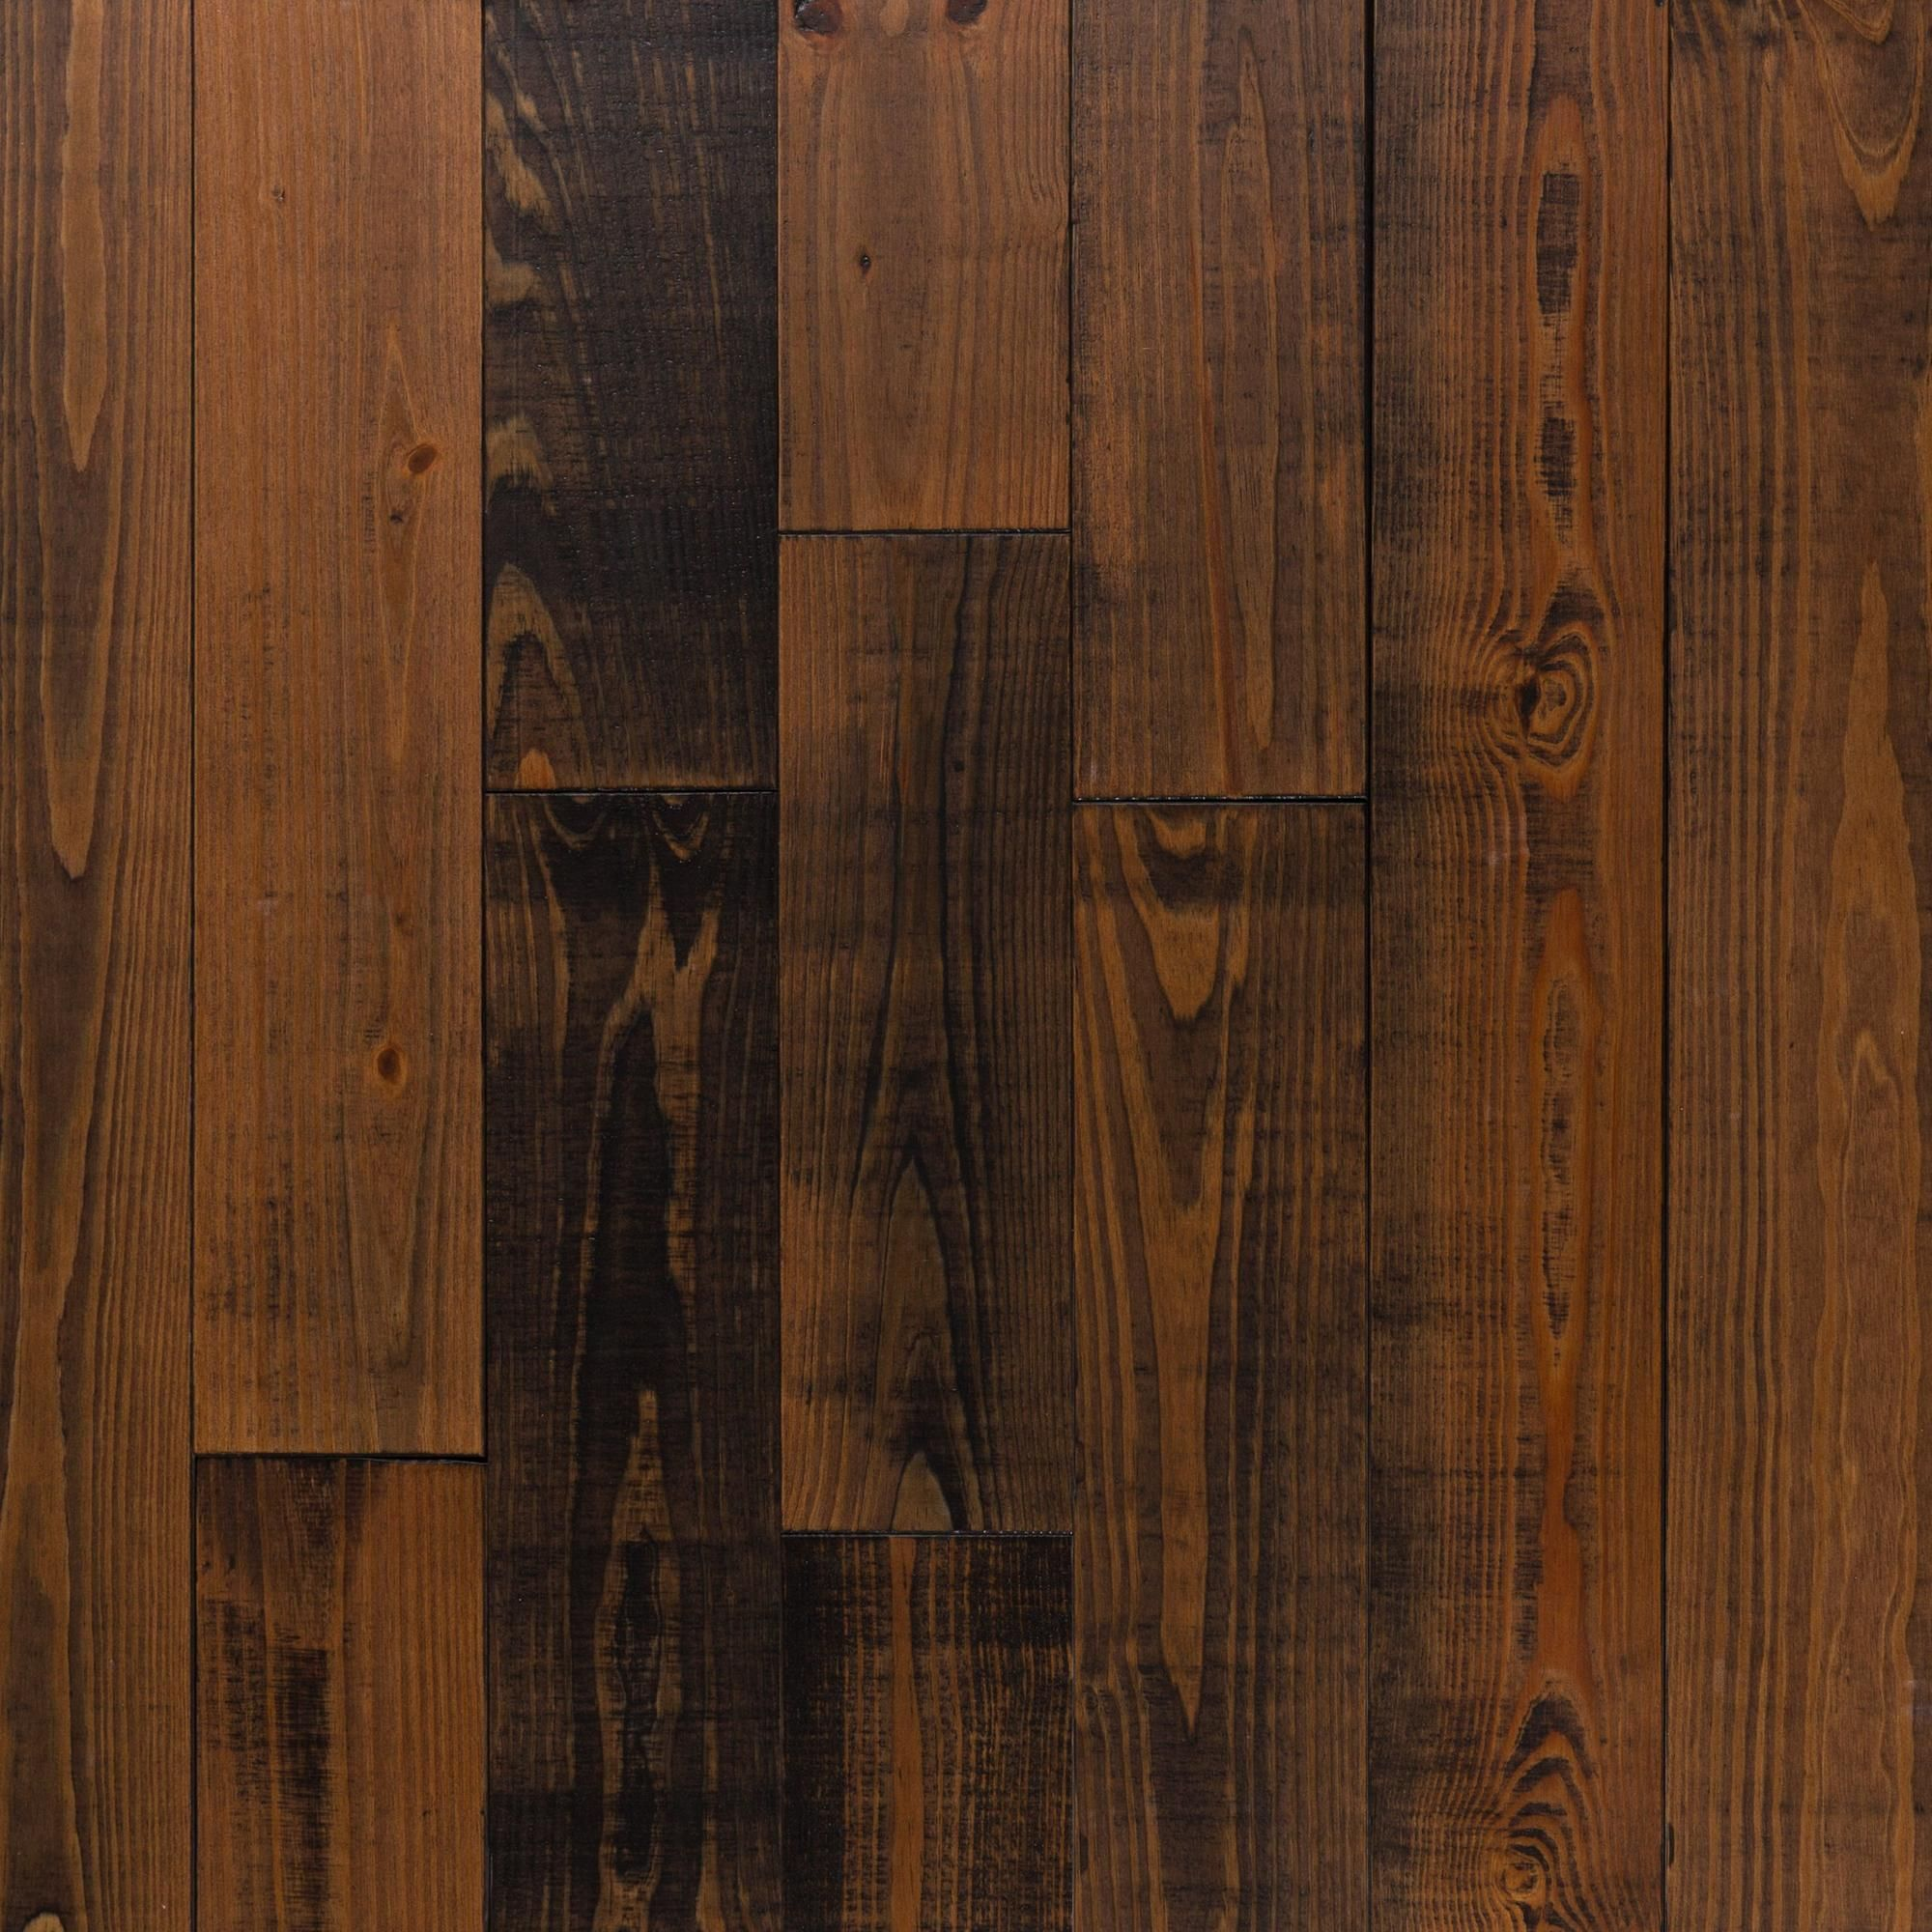 Black Sierra Pine Distressed Solid Hardwood Wood Floors Wide Plank Solid Hardwood Floors Solid Hardwood